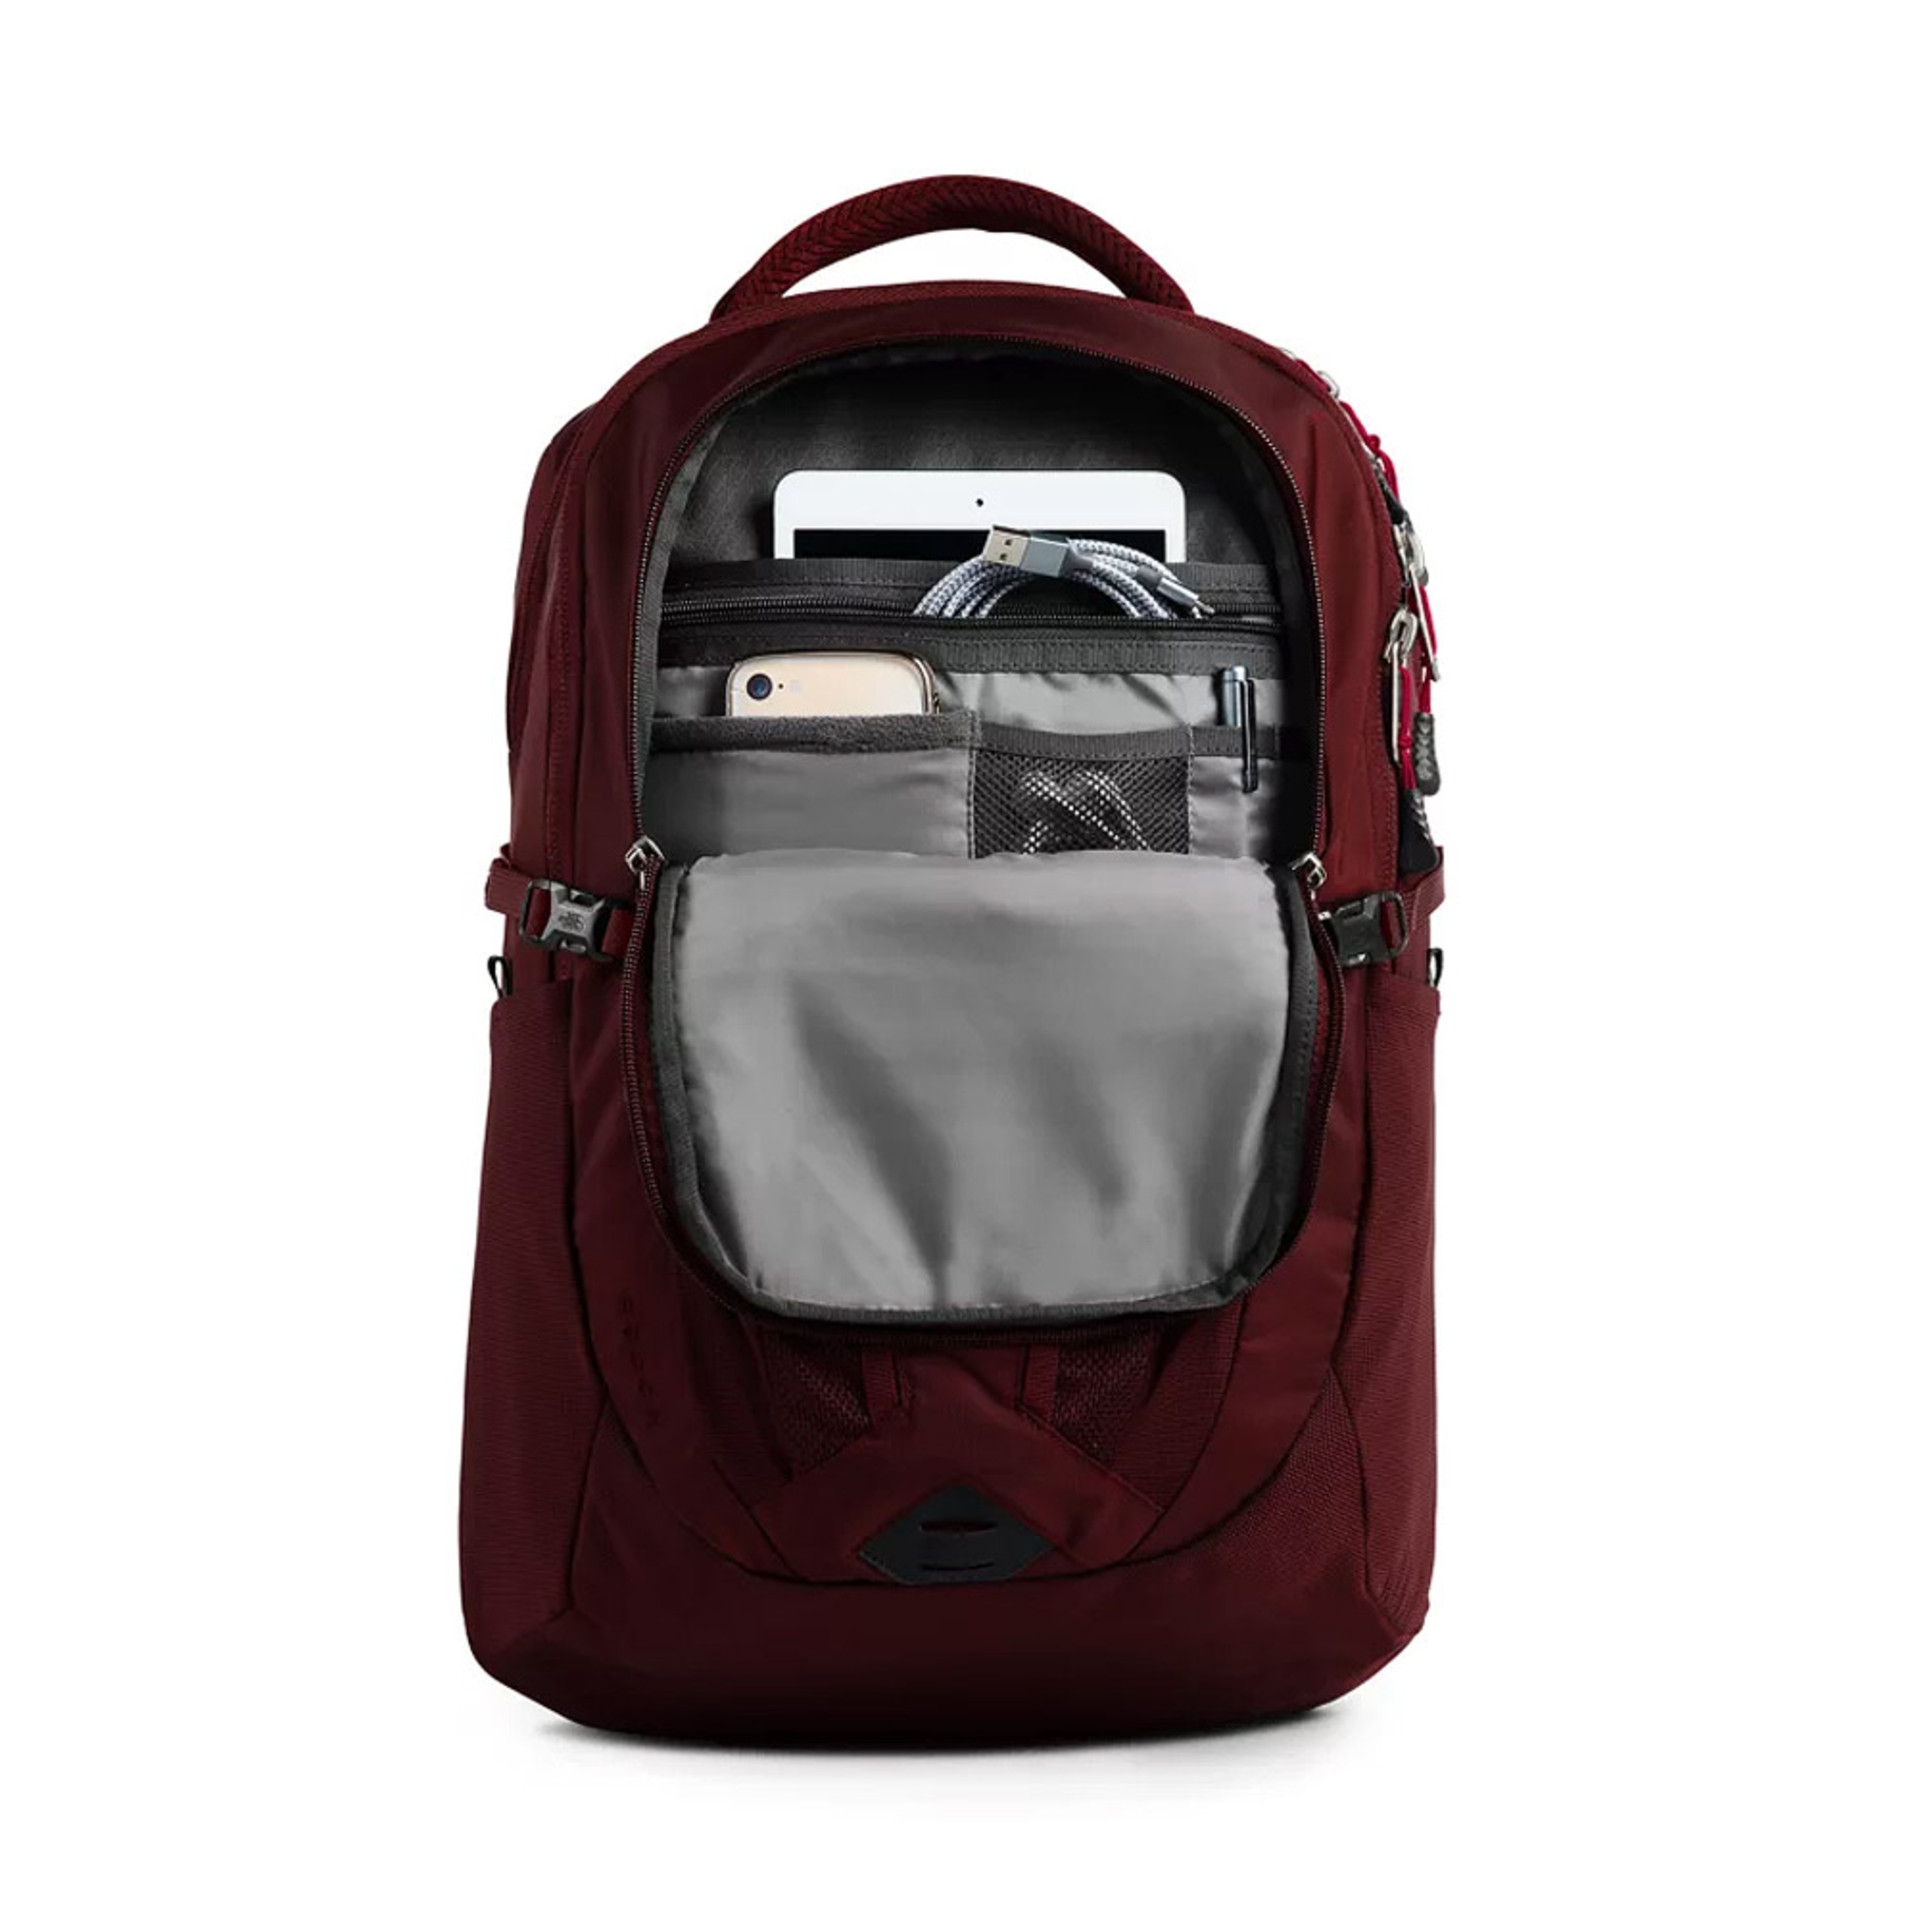 The North Face Women's Recon Backpack Deep Garnet Open